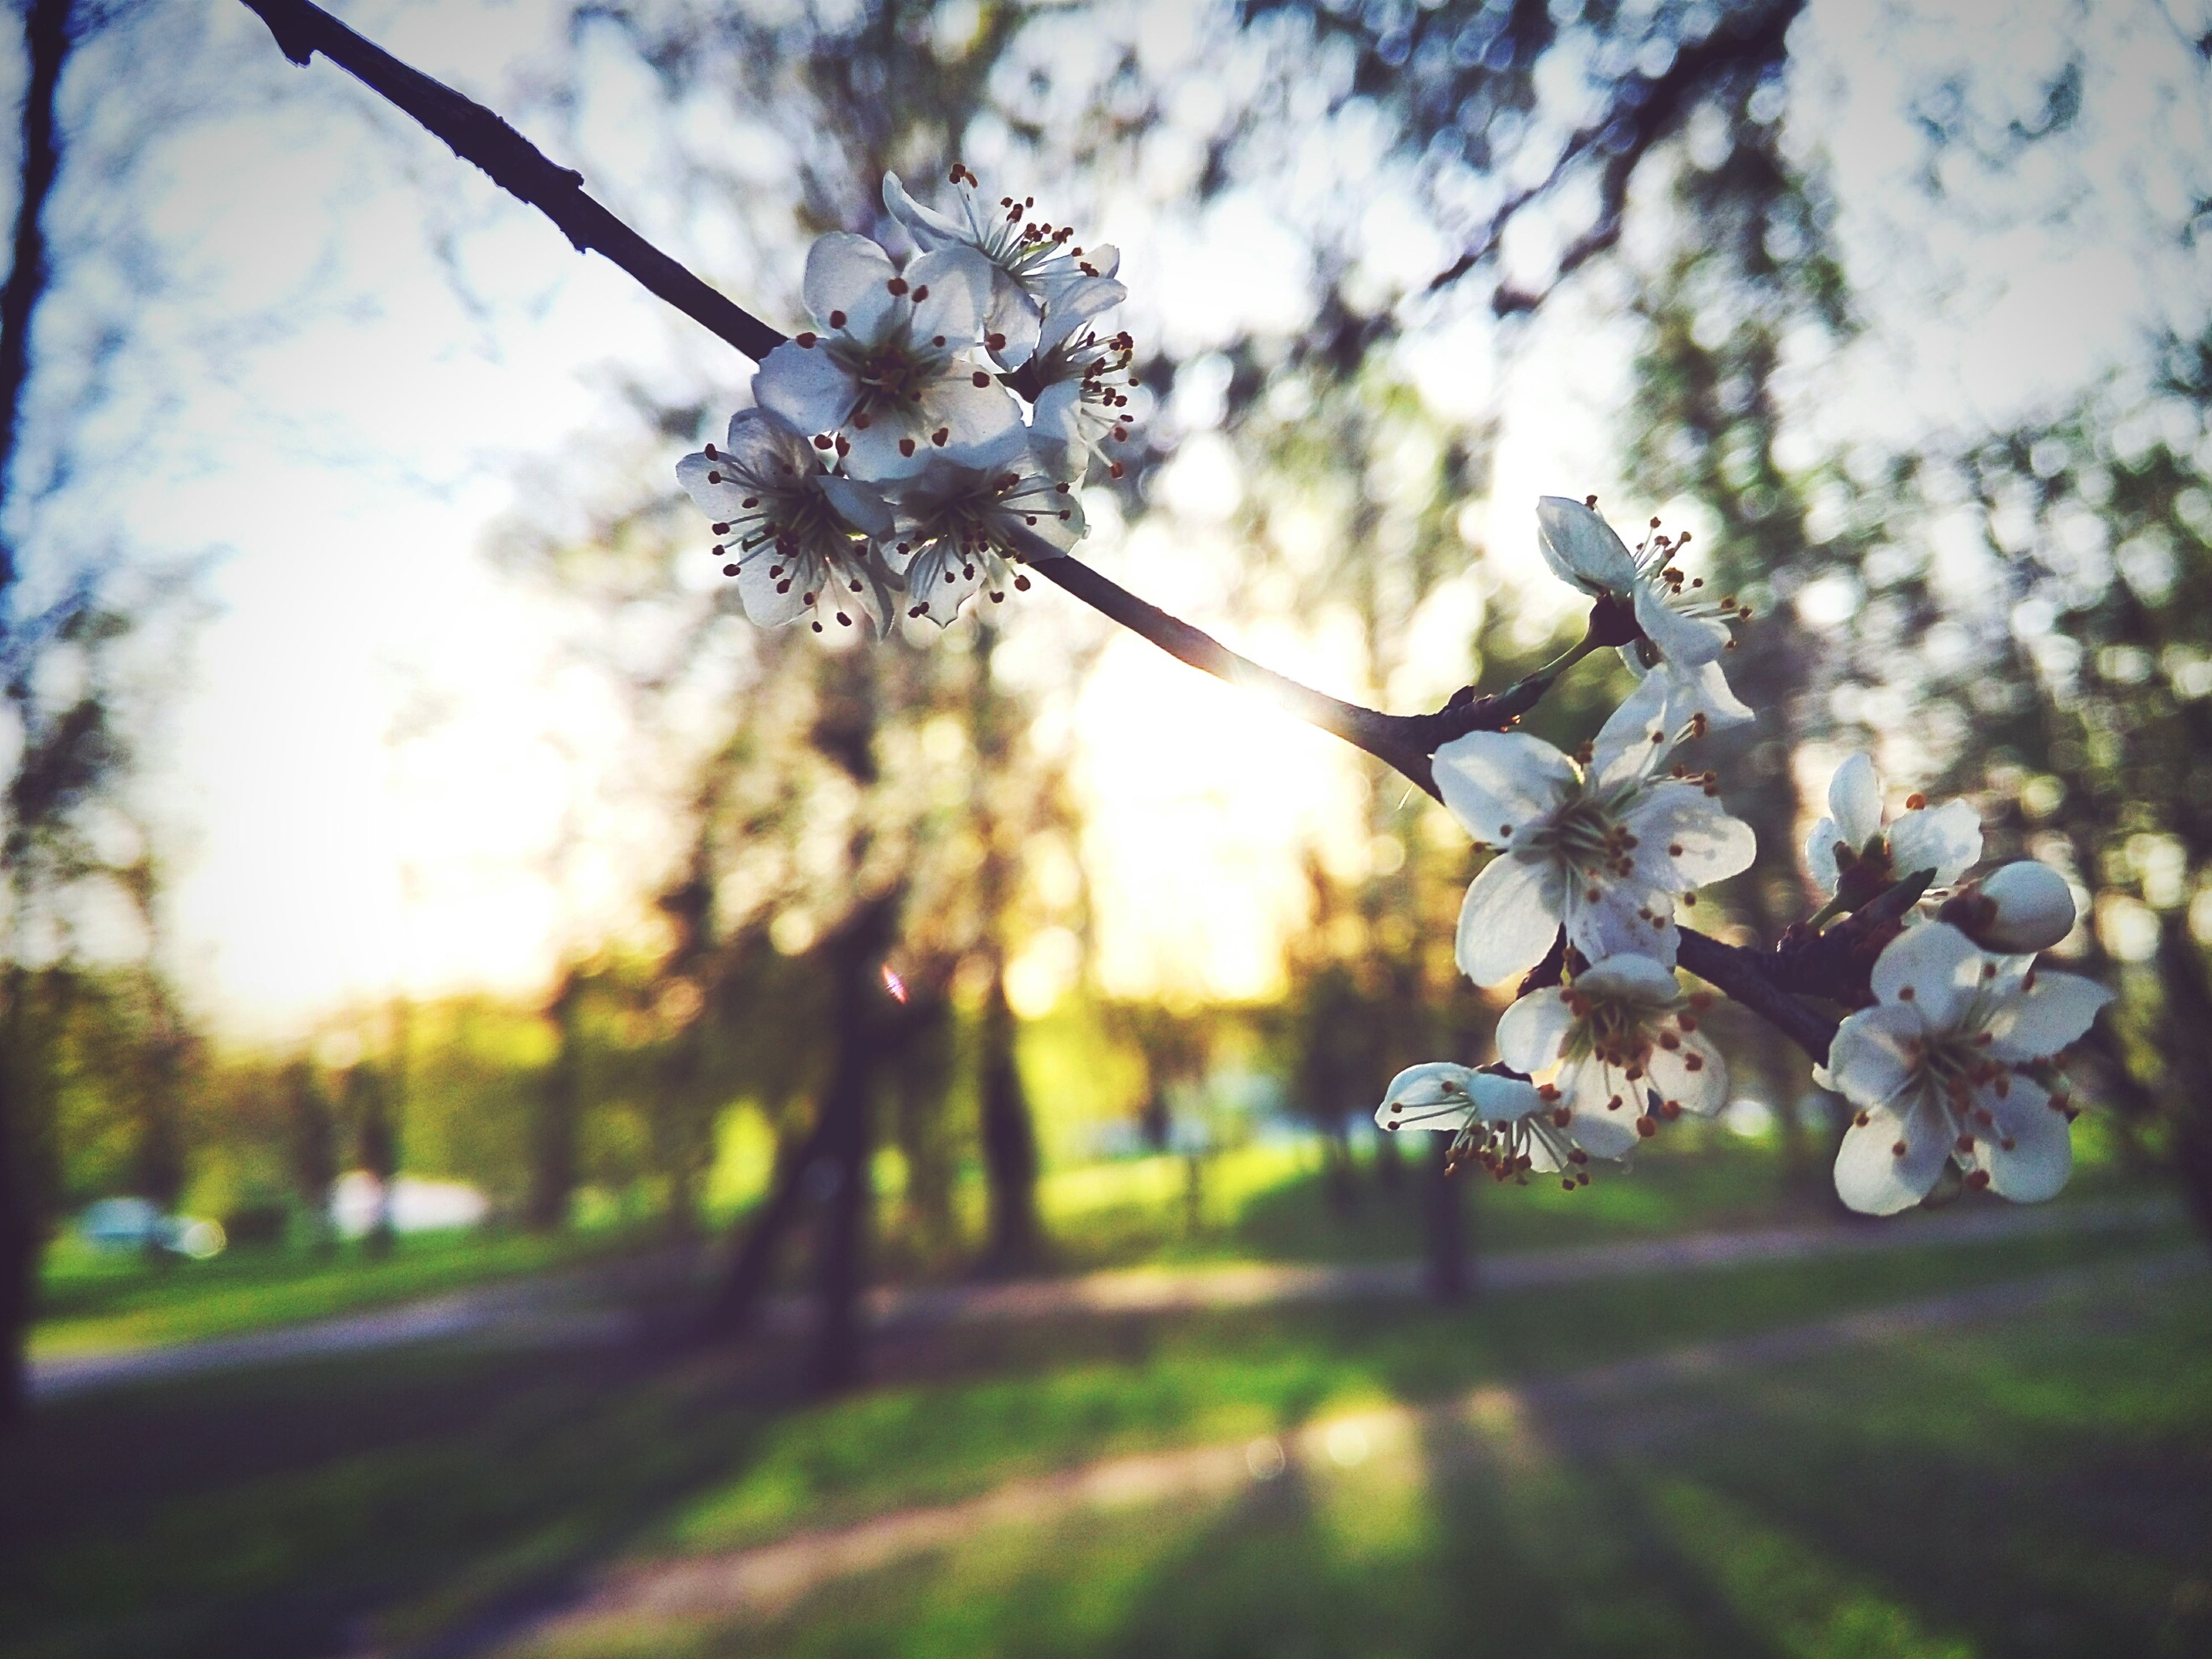 flower, tree, white color, focus on foreground, growth, freshness, nature, fragility, sky, day, beauty in nature, park - man made space, outdoors, branch, close-up, cherry blossom, no people, sunlight, blossom, blooming